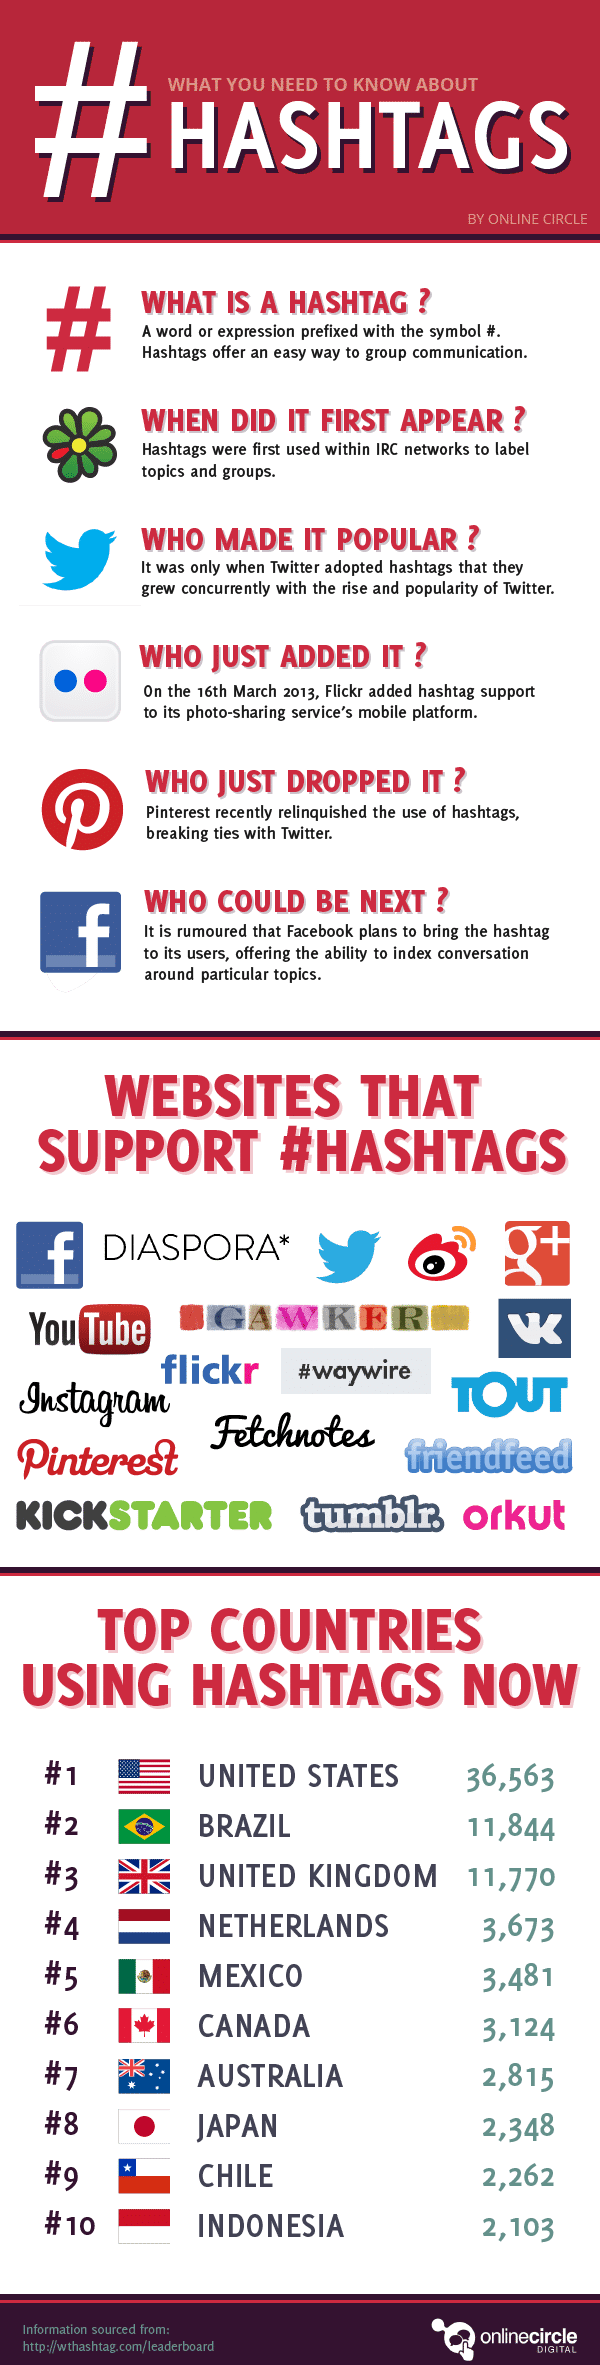 Speed Guide To Social Media Hashtags [Infographic]